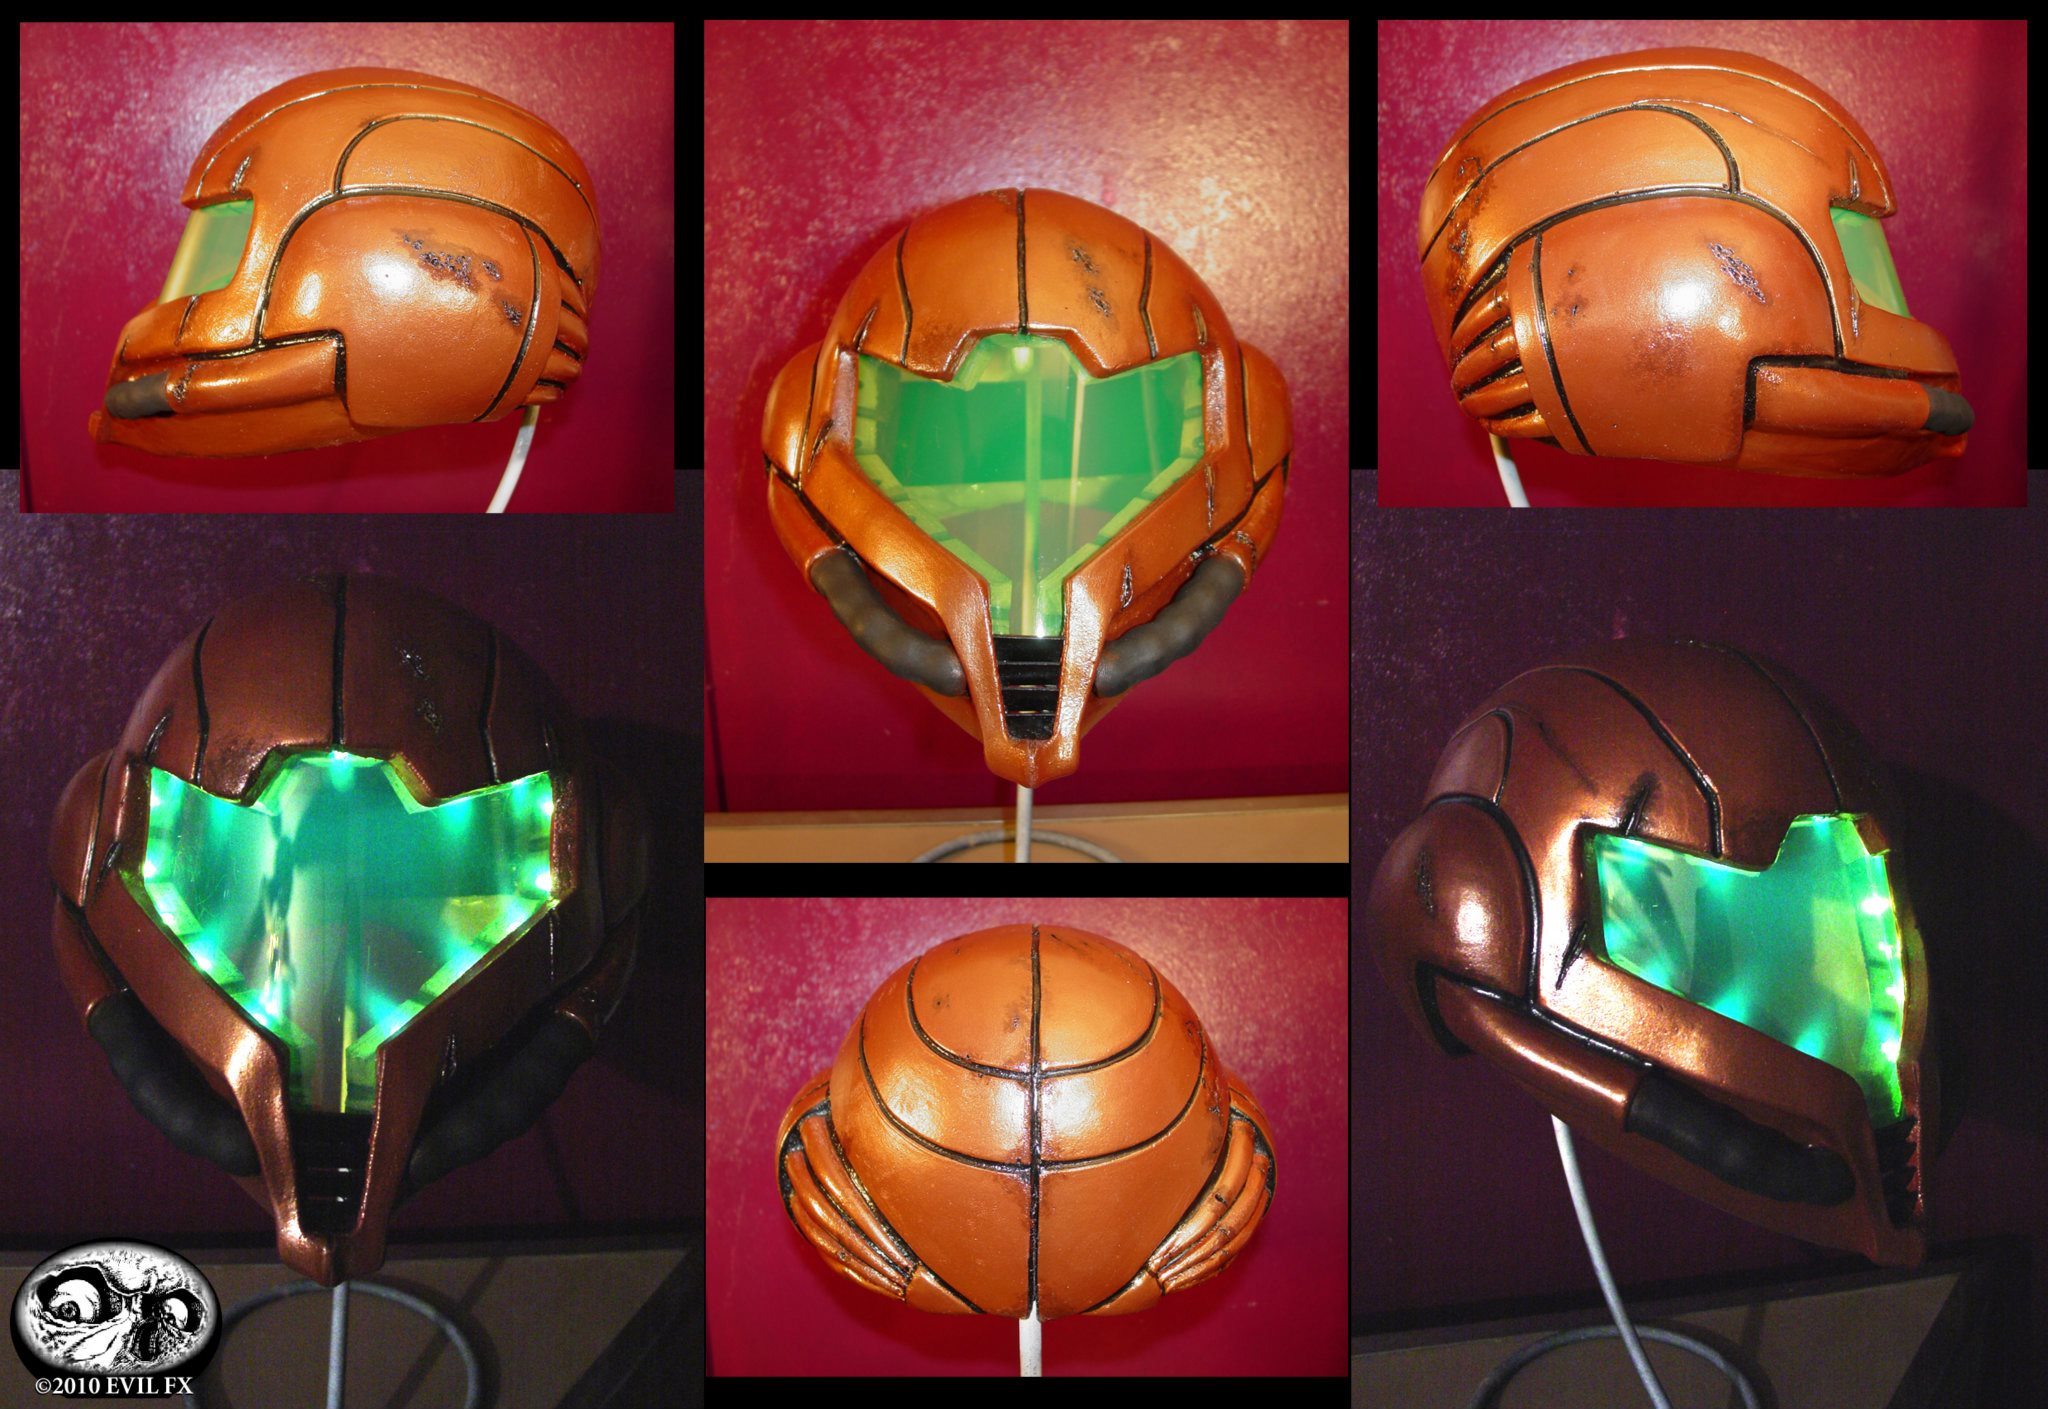 Battle Damaged Metroid Helmet